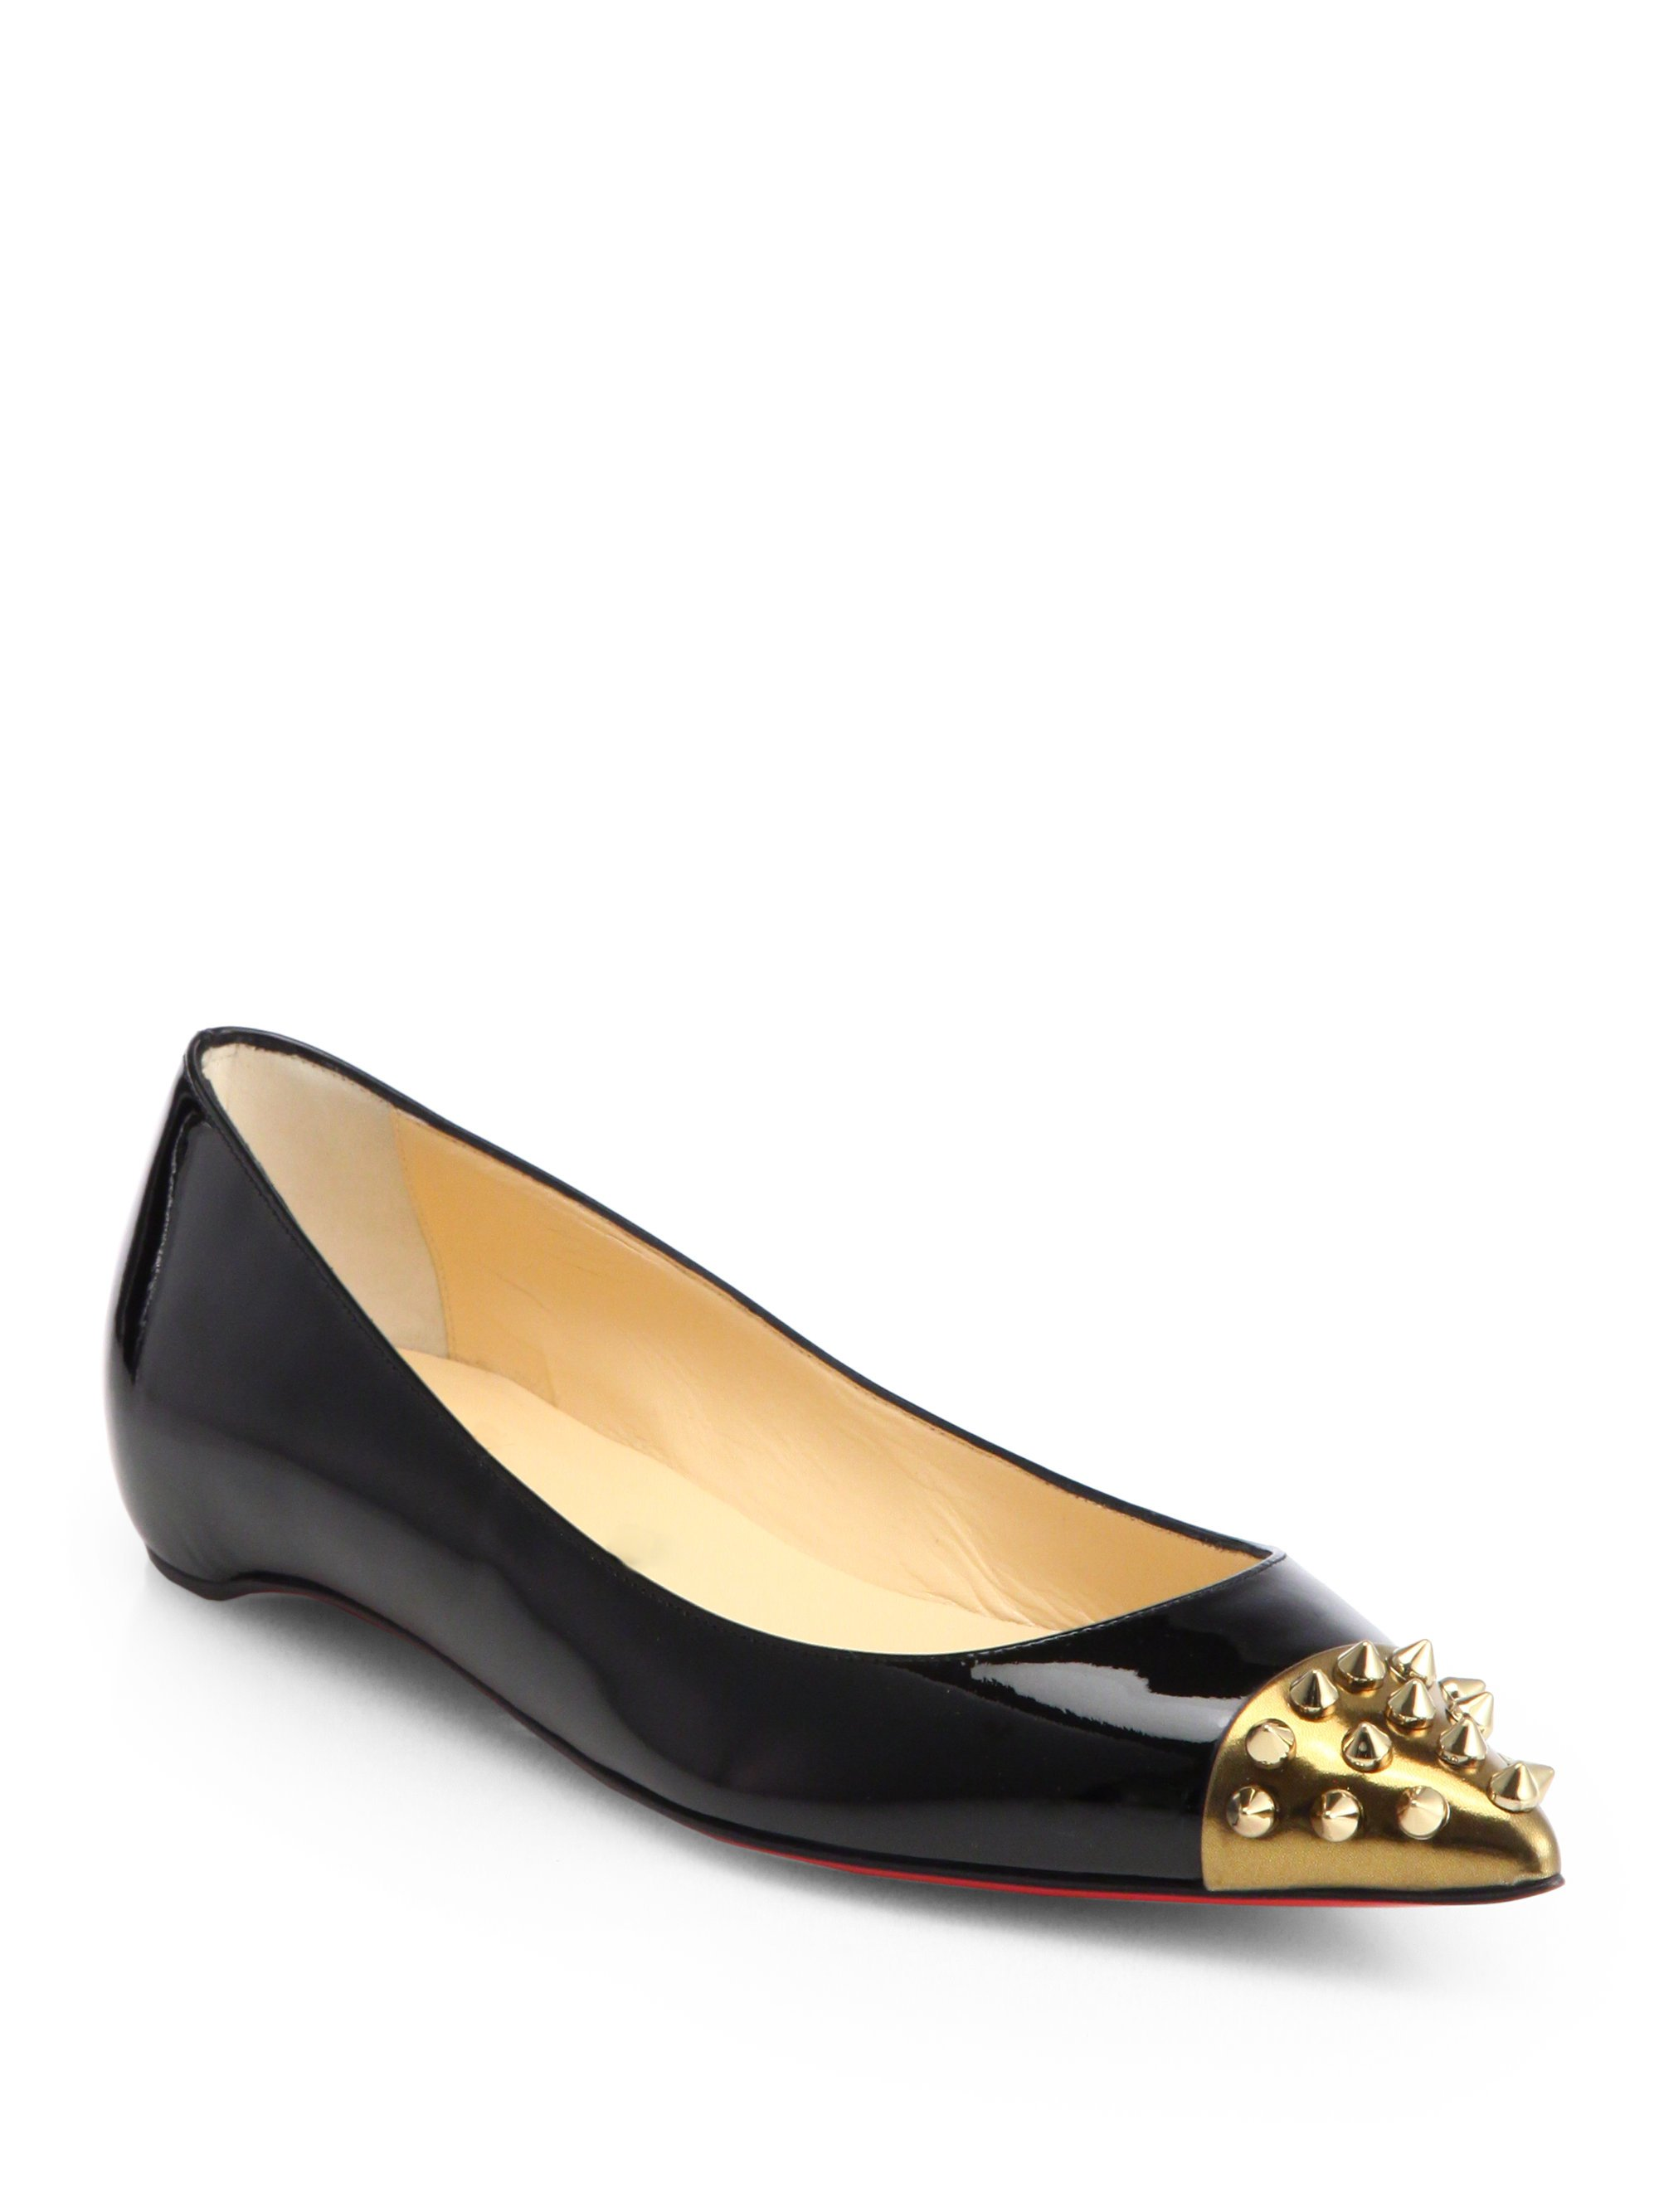 48c38c8fb83c Christian Louboutin Geo Patent Leather Spiked Captoe Ballet Flats in ...